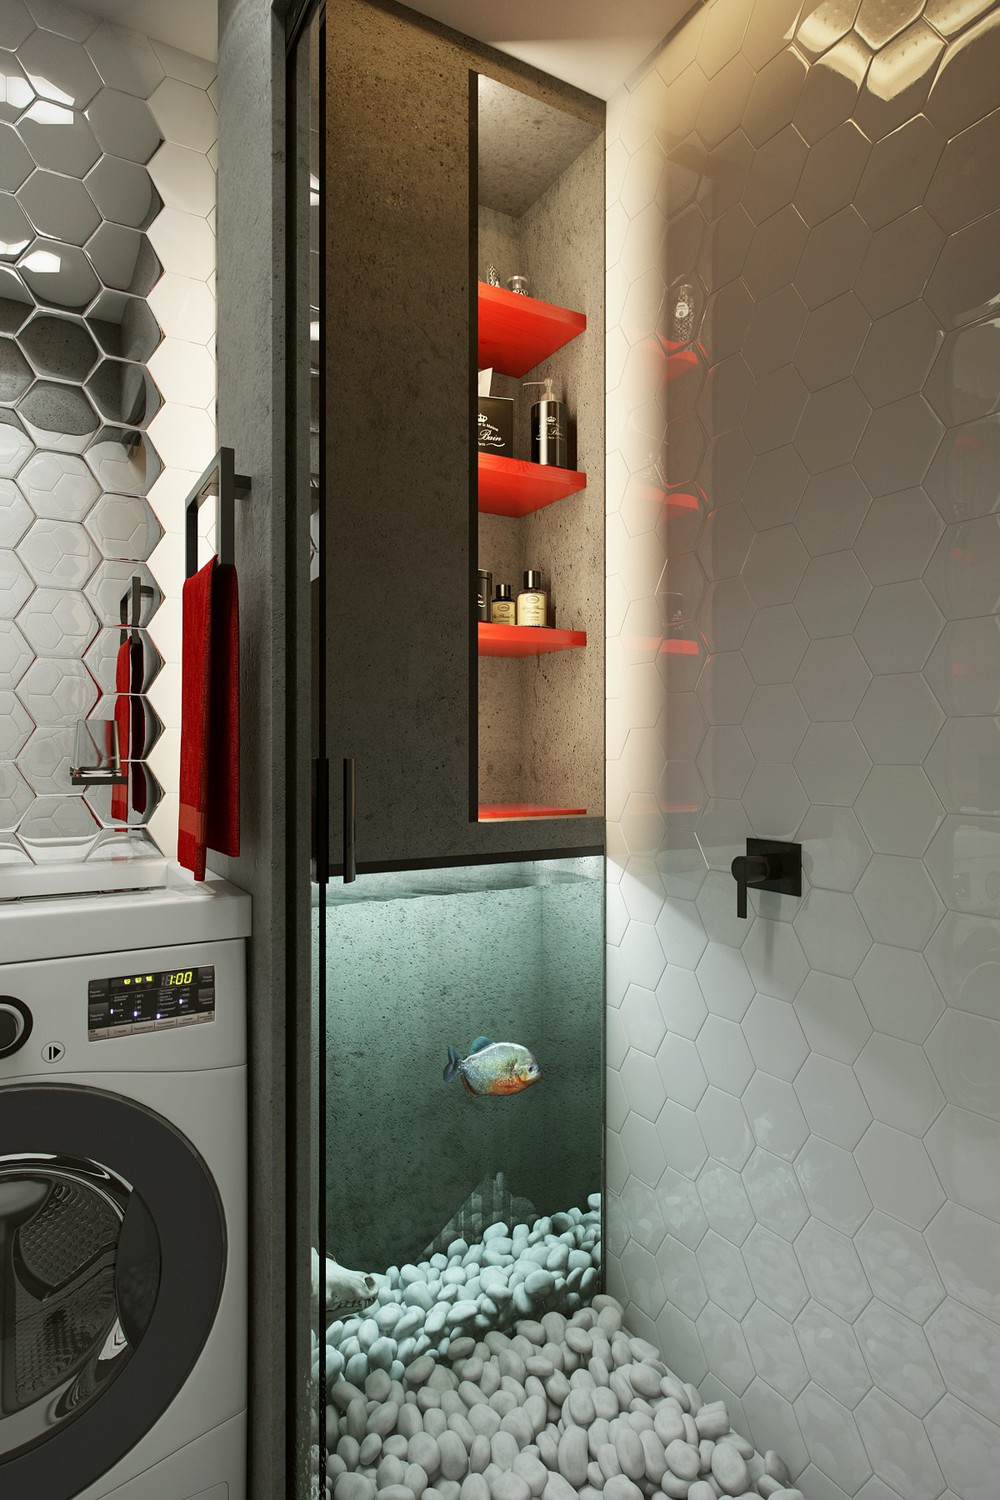 . laundry room aquarium   Interior Design Ideas